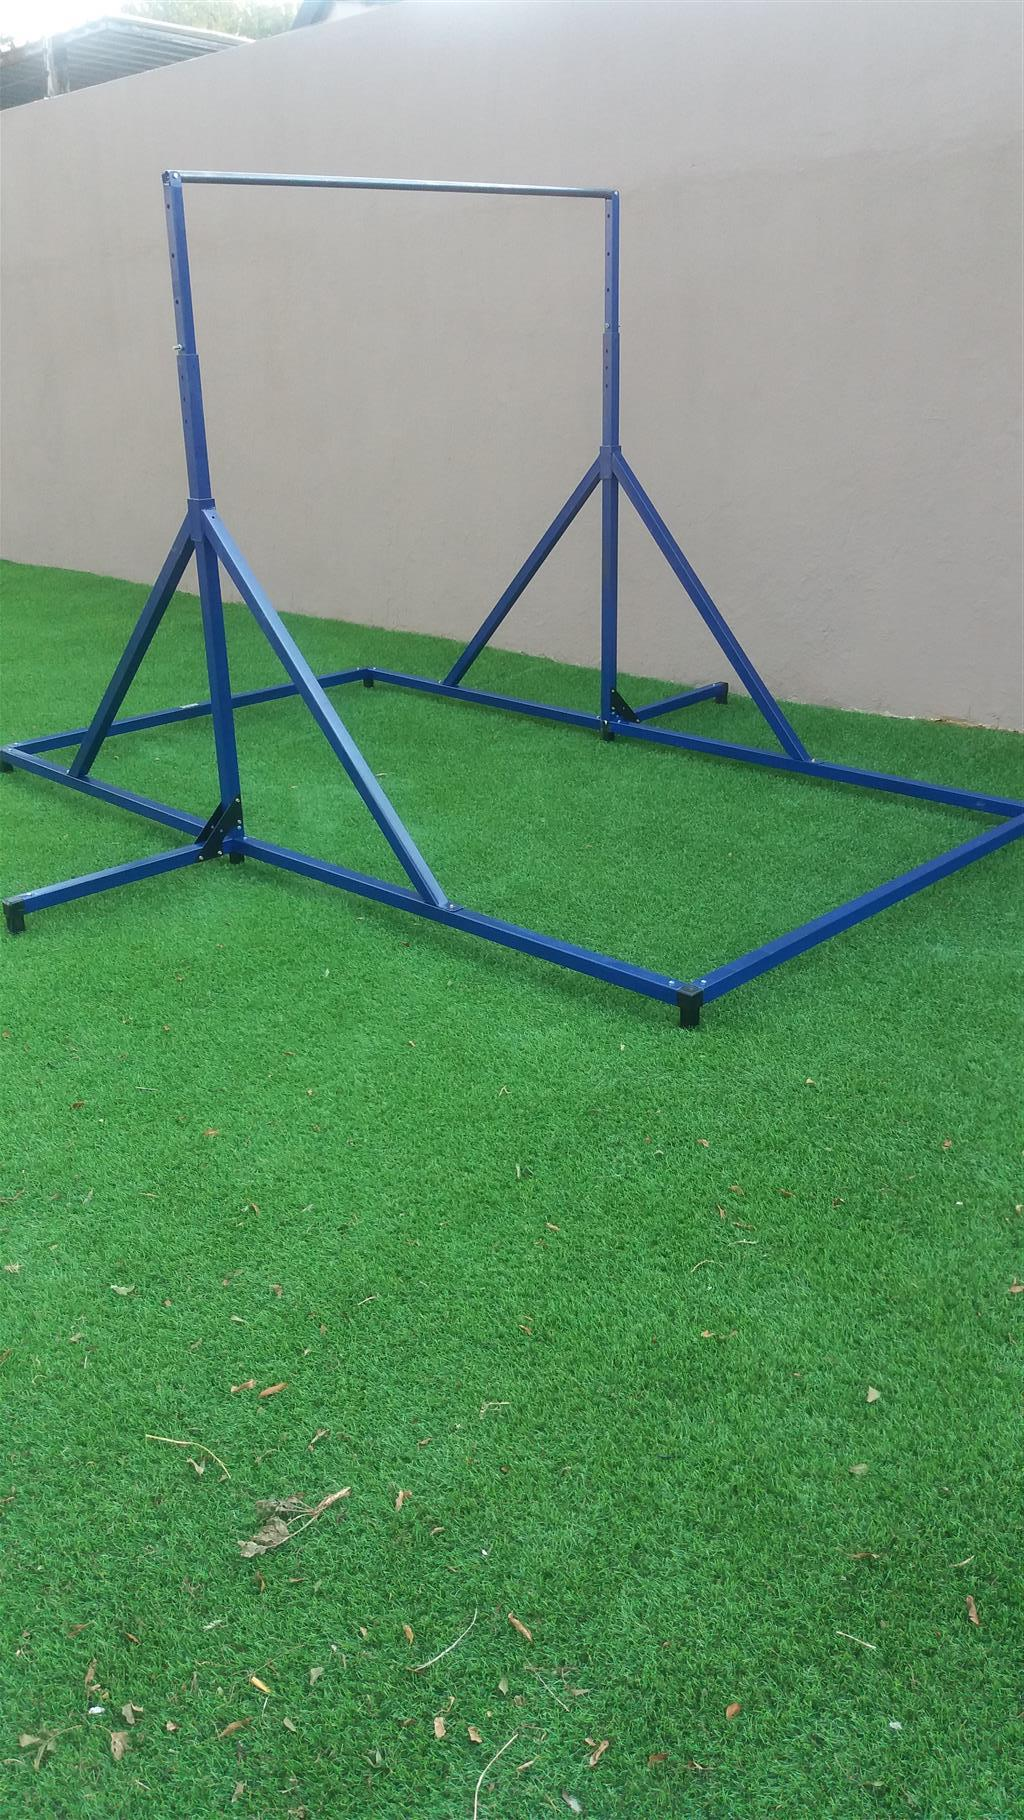 Gymnastic Practice Equipment for home use.